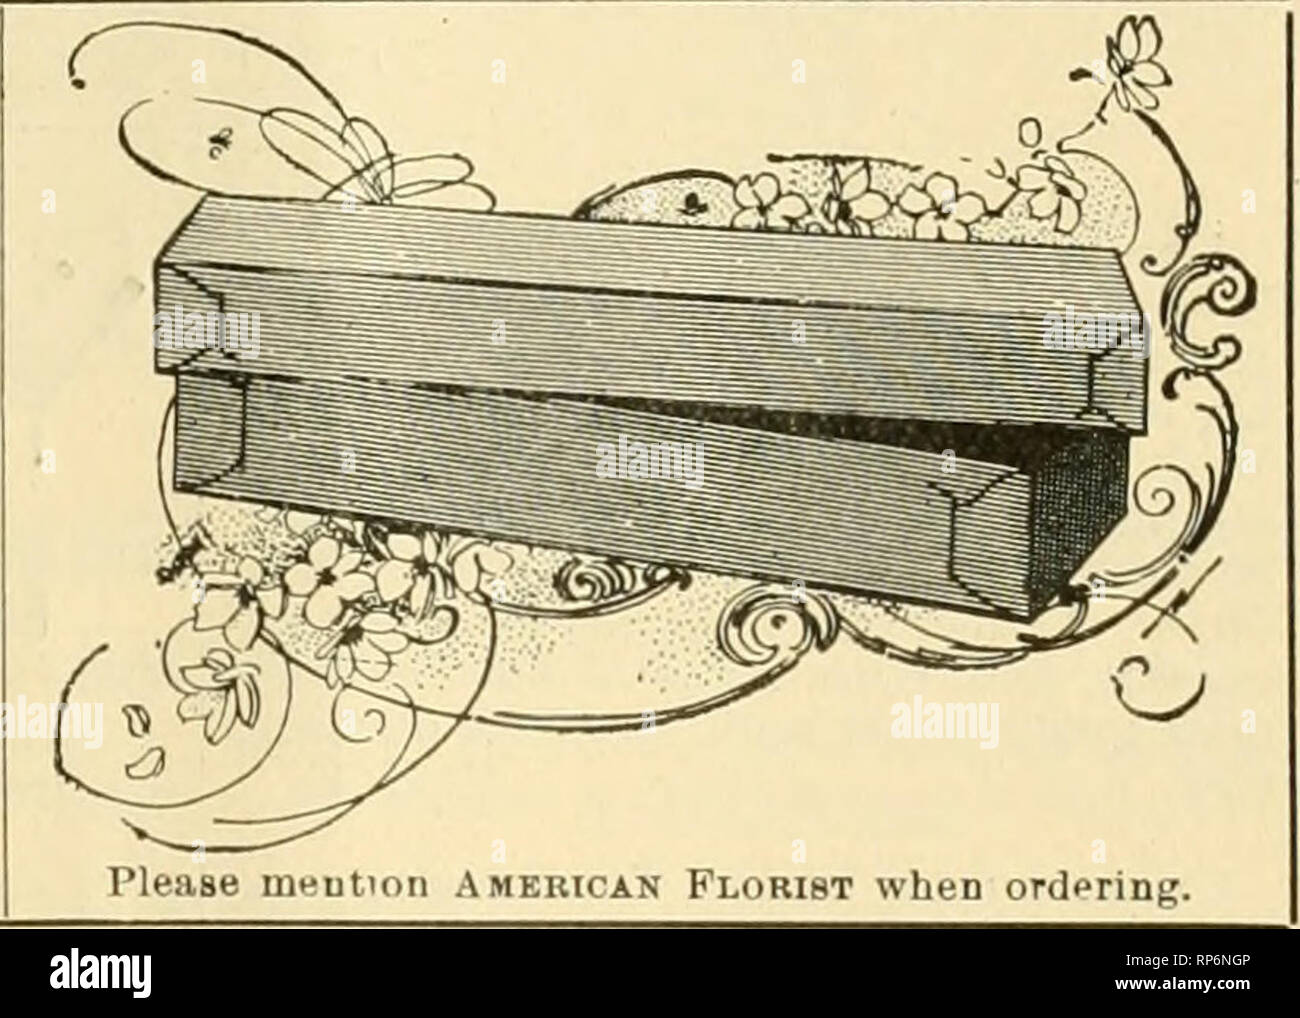 . The American florist : a weekly journal for the trade. Floriculture; Florists. Thi« wooden box nicely Btained and var- nlehedt 18x30x12 made In two sections, one for each sizd )etter, i;iven away wltli first order of 500 letters. Block Letters, IVi or 2-inch size, p^r 100. $2.00. Script Letters, $4. Fastener with each letter or word. Used by leadin? florists everywhere and for sale by ftil wholesale florists and supply deulers. N. F. McCarthy, Trcas. and Manager, 84 Hawley St., BOSTON, MASS. First latroduction to America of BLACK SOLUBLE INSECTICIDE • ? a ? %^ V^^A I a t ? ? Awarded Grand Pr - Stock Image